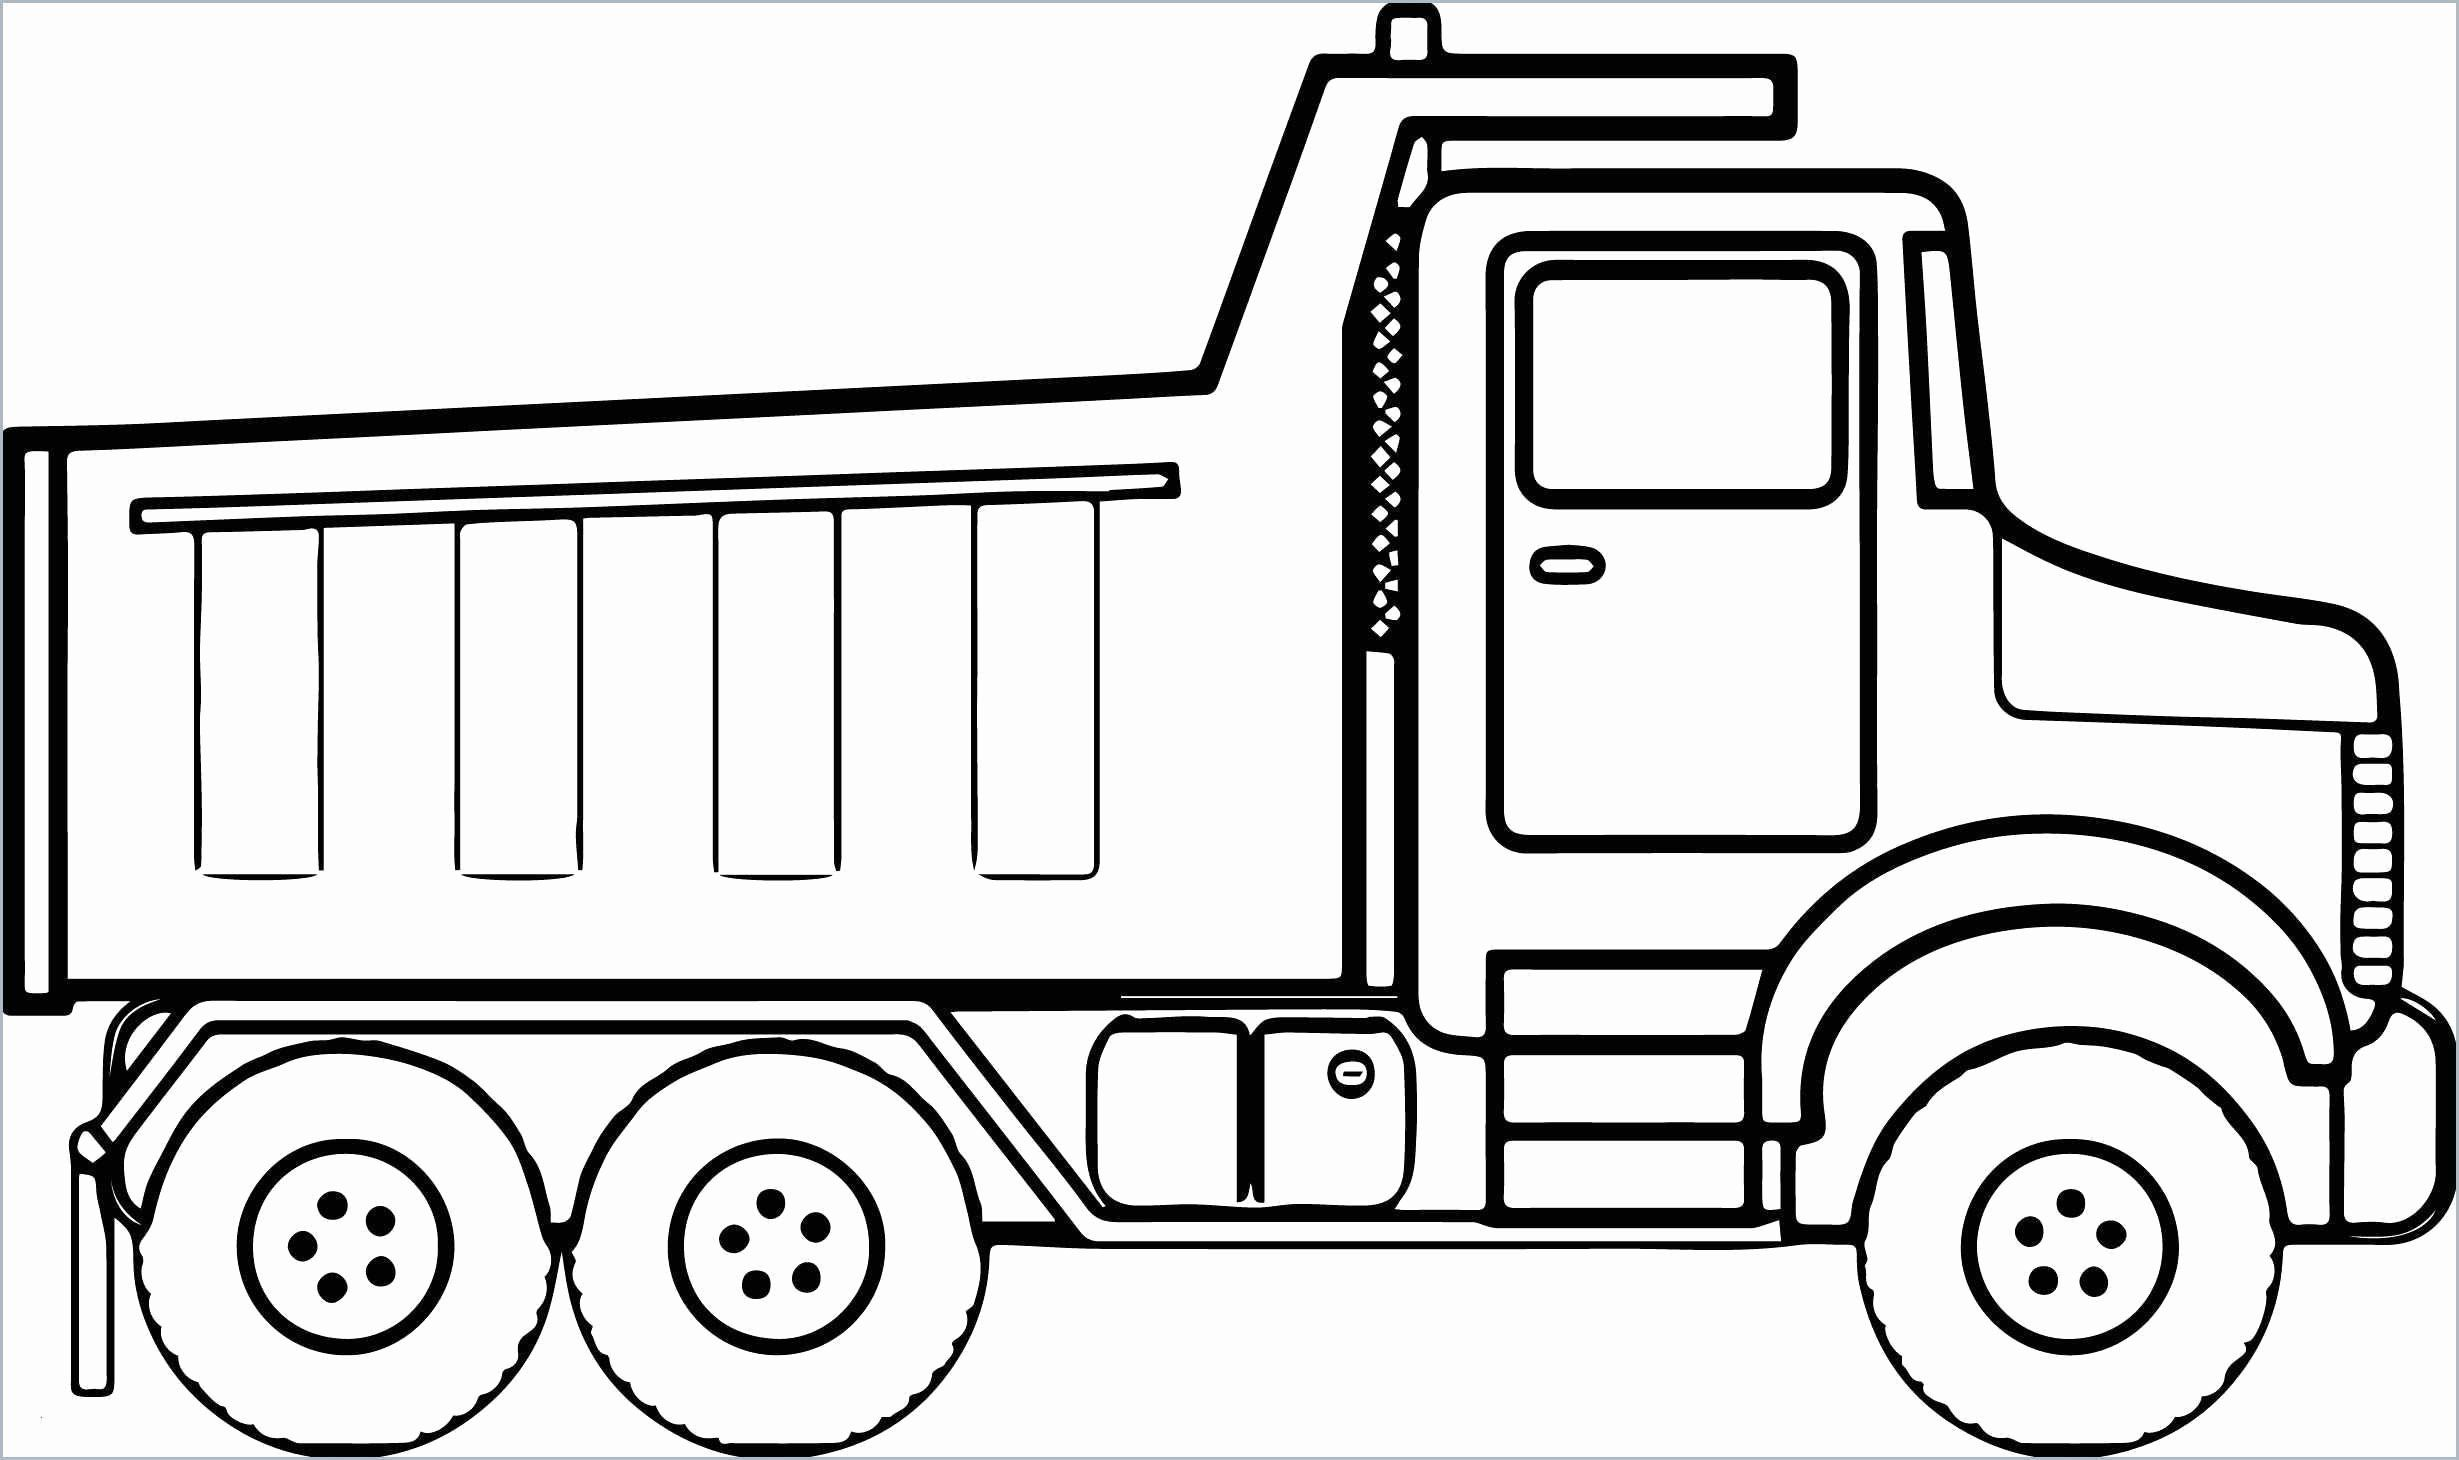 Pin By Haley Crowe On Coloring Pages In 2020 Monster Truck Coloring Pages Truck Coloring Pages Cars Coloring Pages